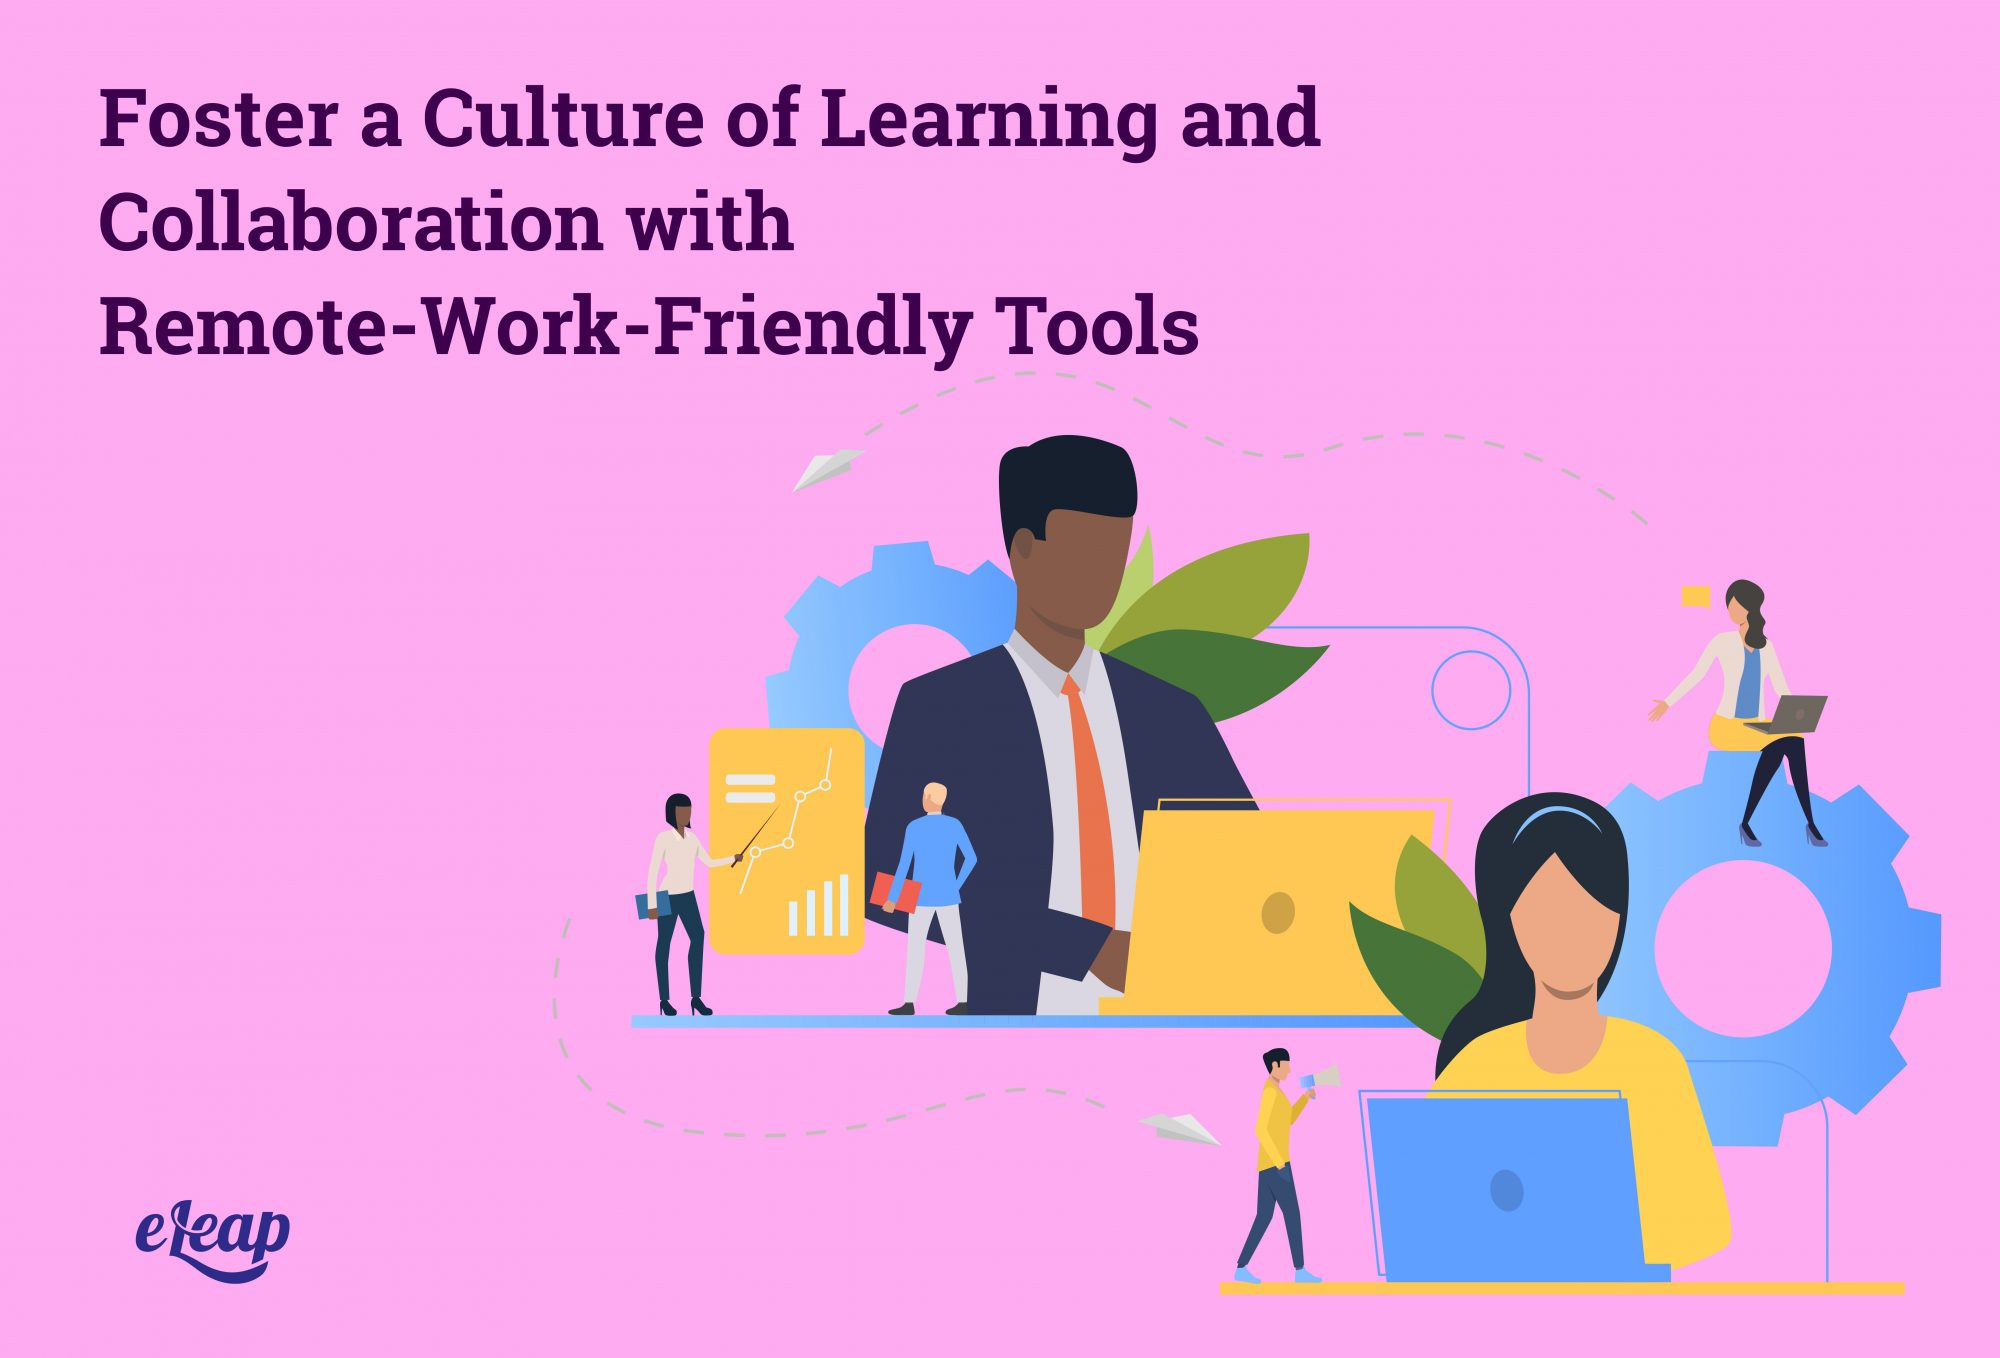 Foster a Culture of Learning and Collaboration with Remote-Work-Friendly Tools